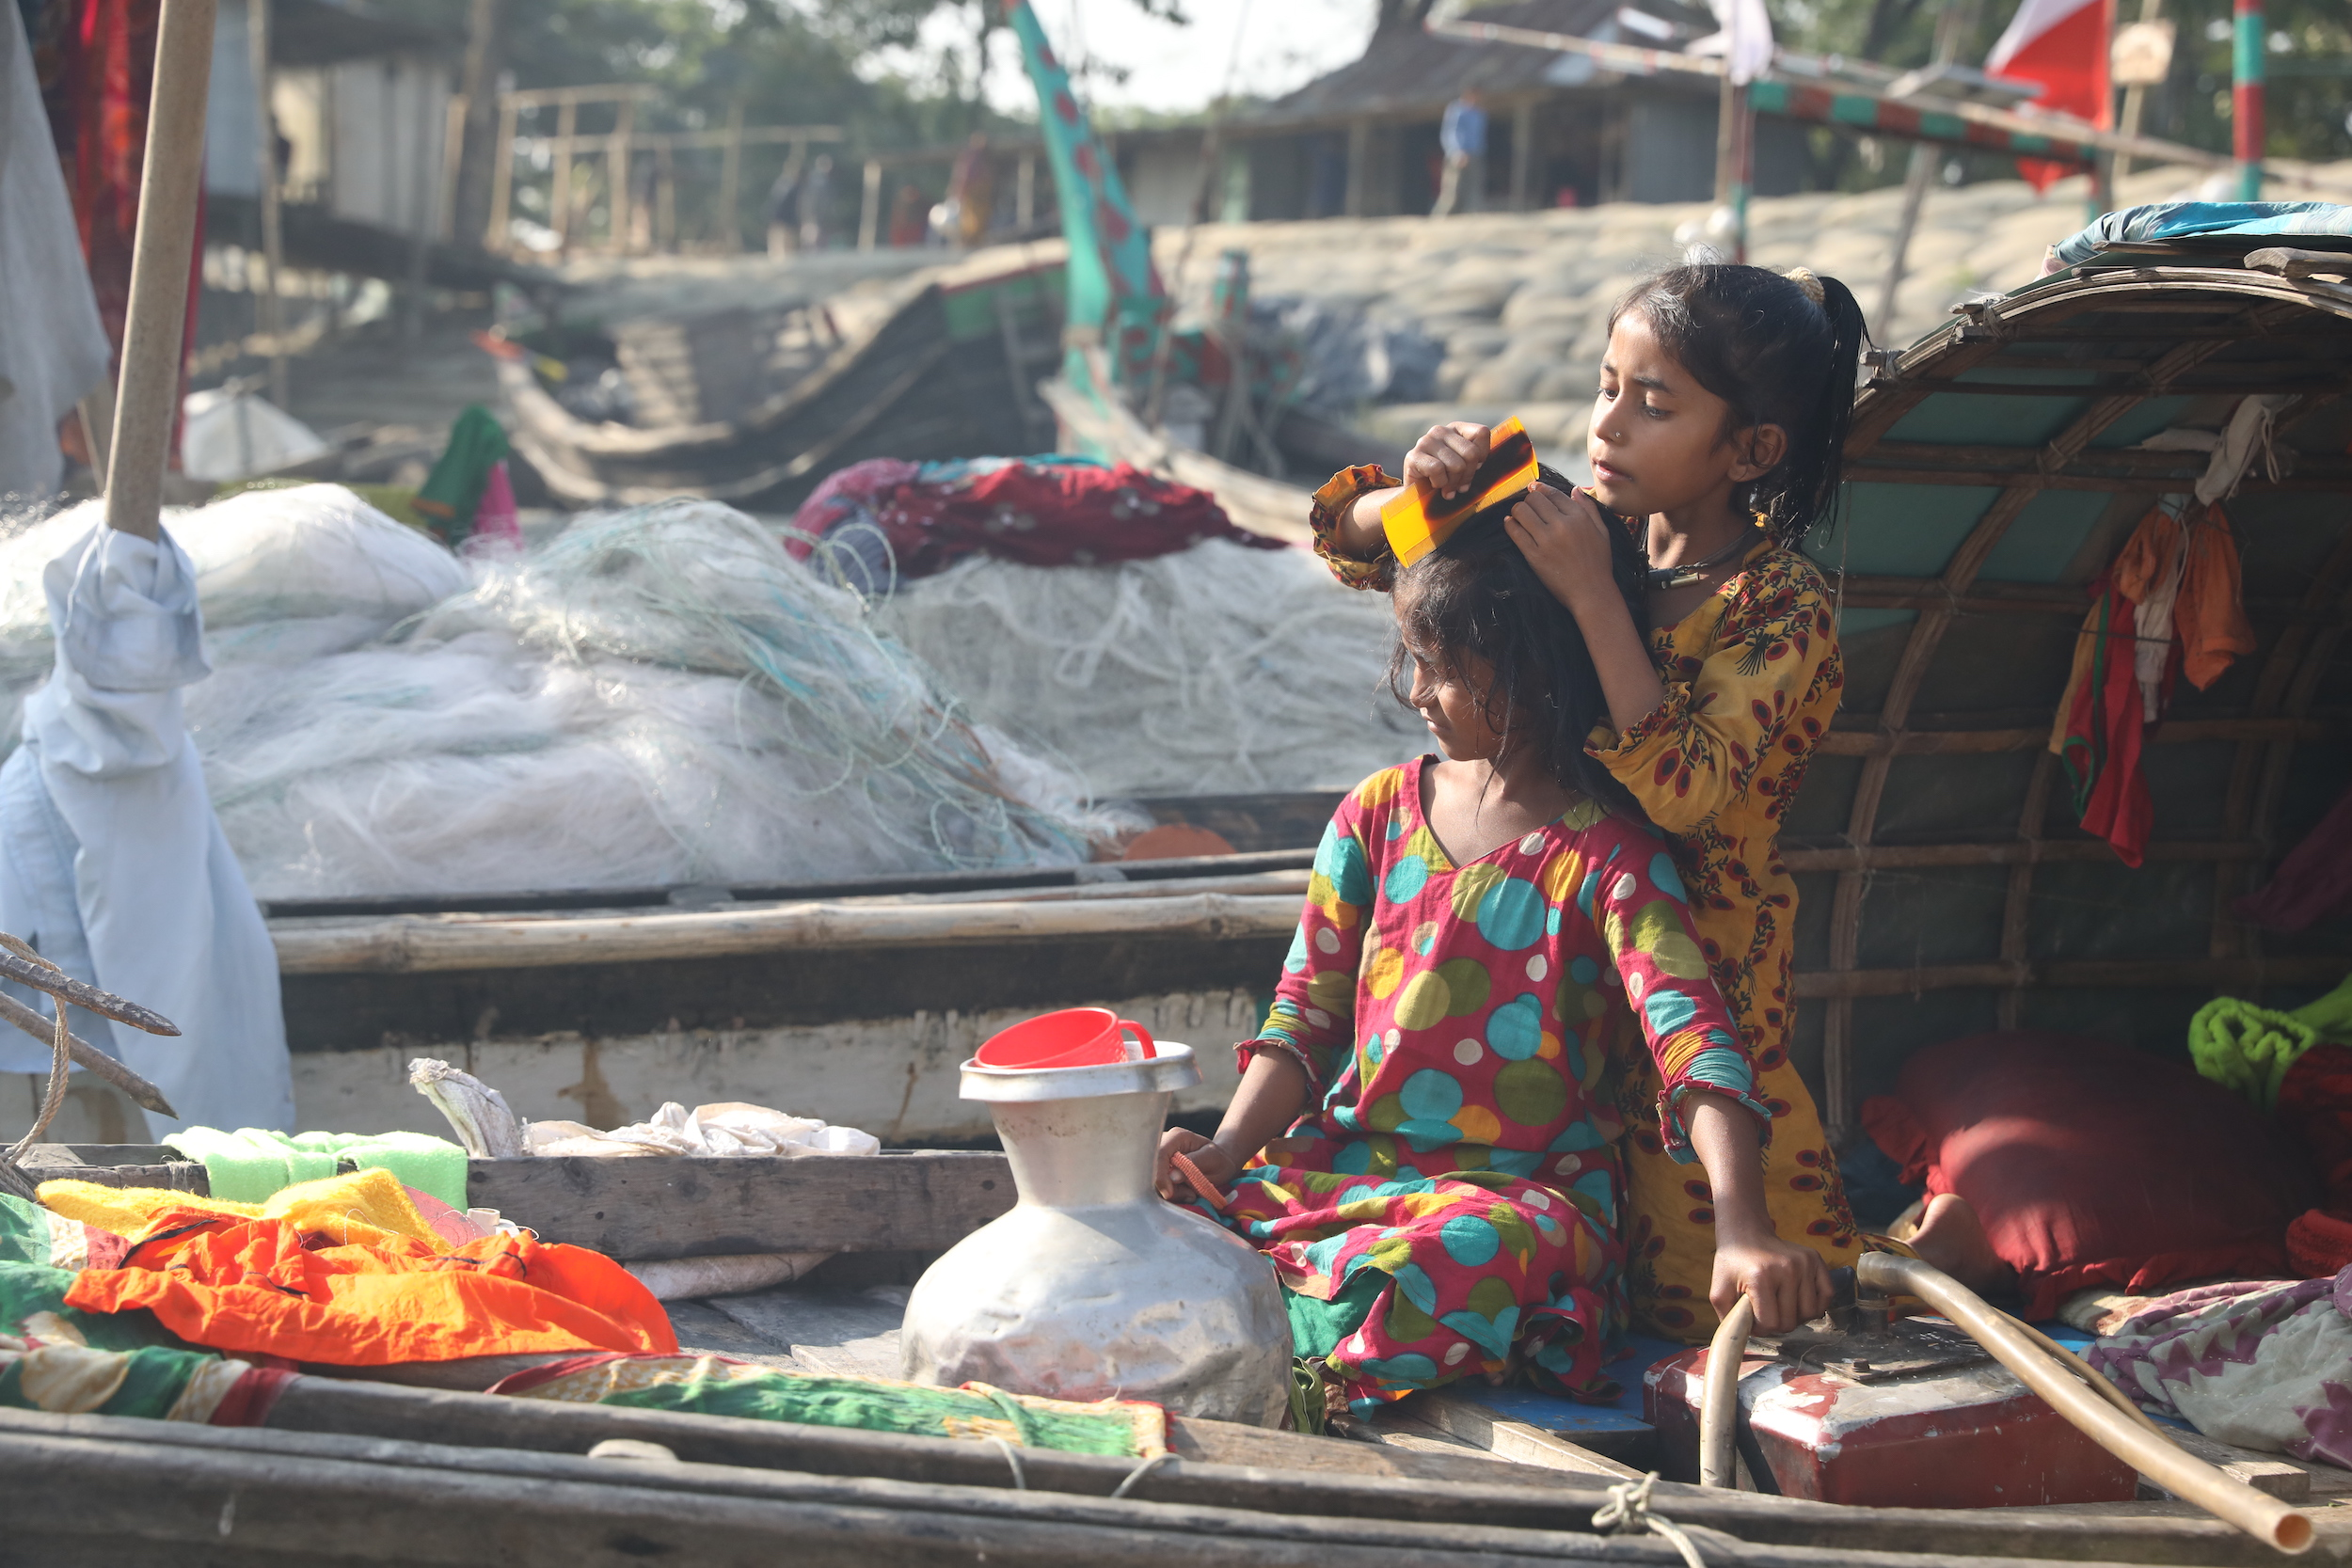 With no access to health and sanitation infrastructure, women give birth to and raise children on the boats [Image: Md. Abdus Salam]